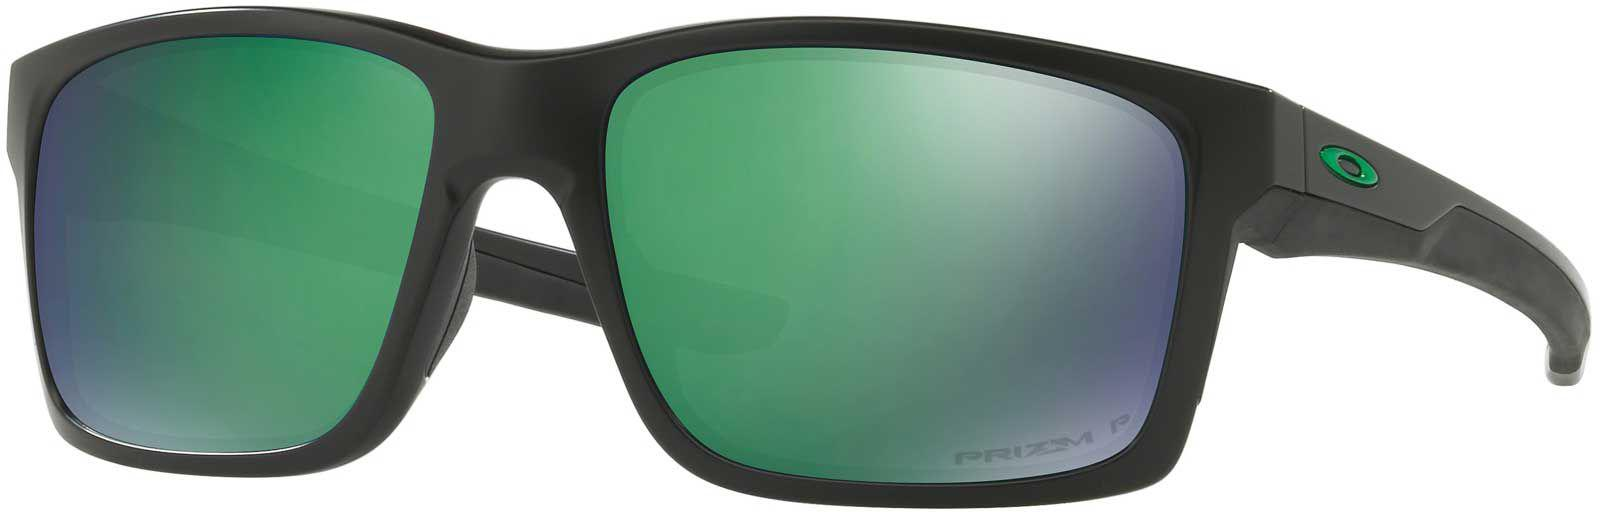 f24ece4cd6 Oakley - Green Mainlink Prizm Polarized Sunglasses for Men - Lyst. View  fullscreen